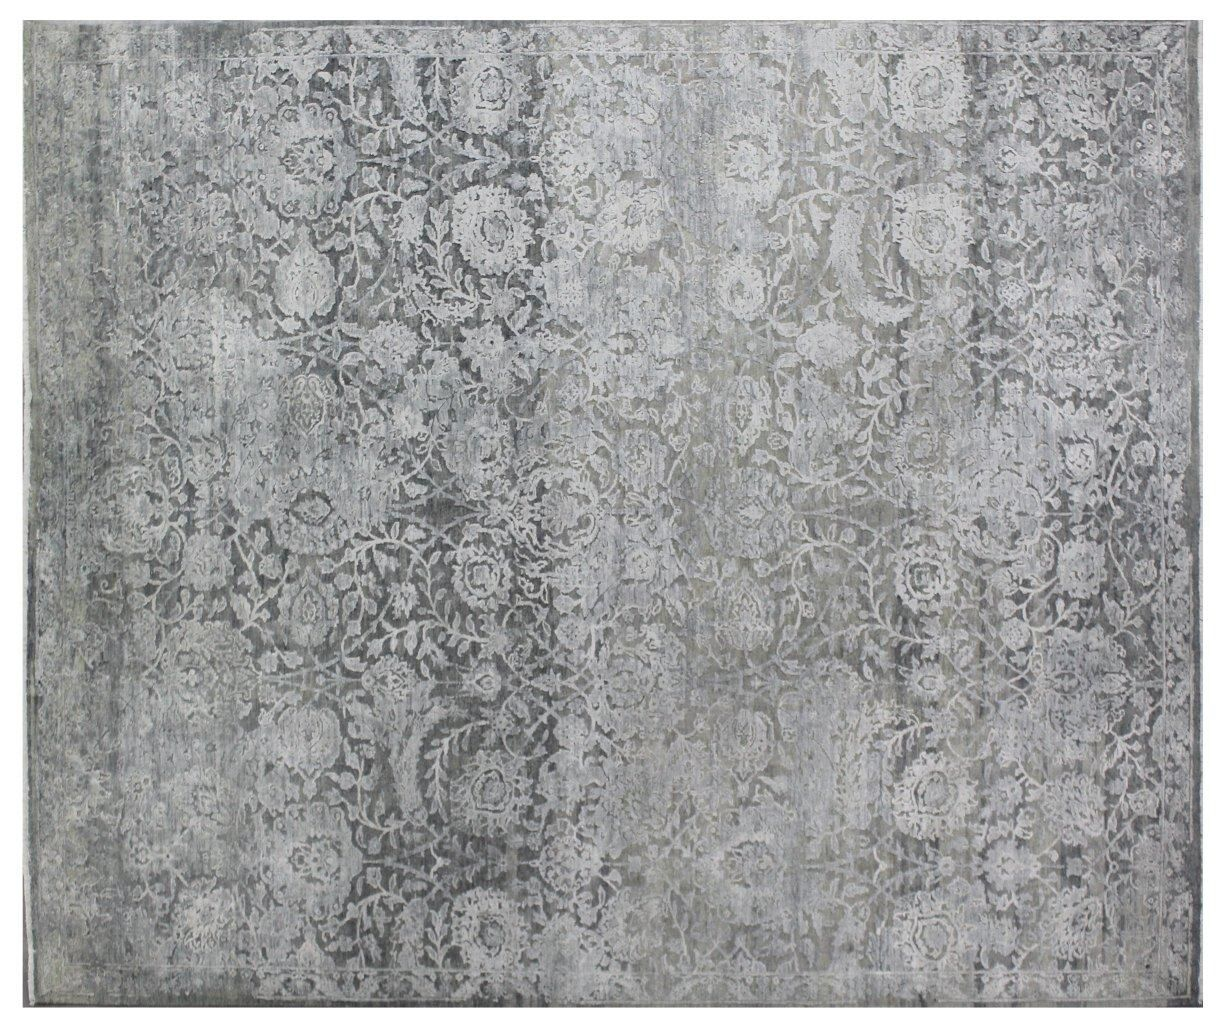 Meena Hand-Knotted Gray Area Rug Rug Size: Rectangle 14' x 18'